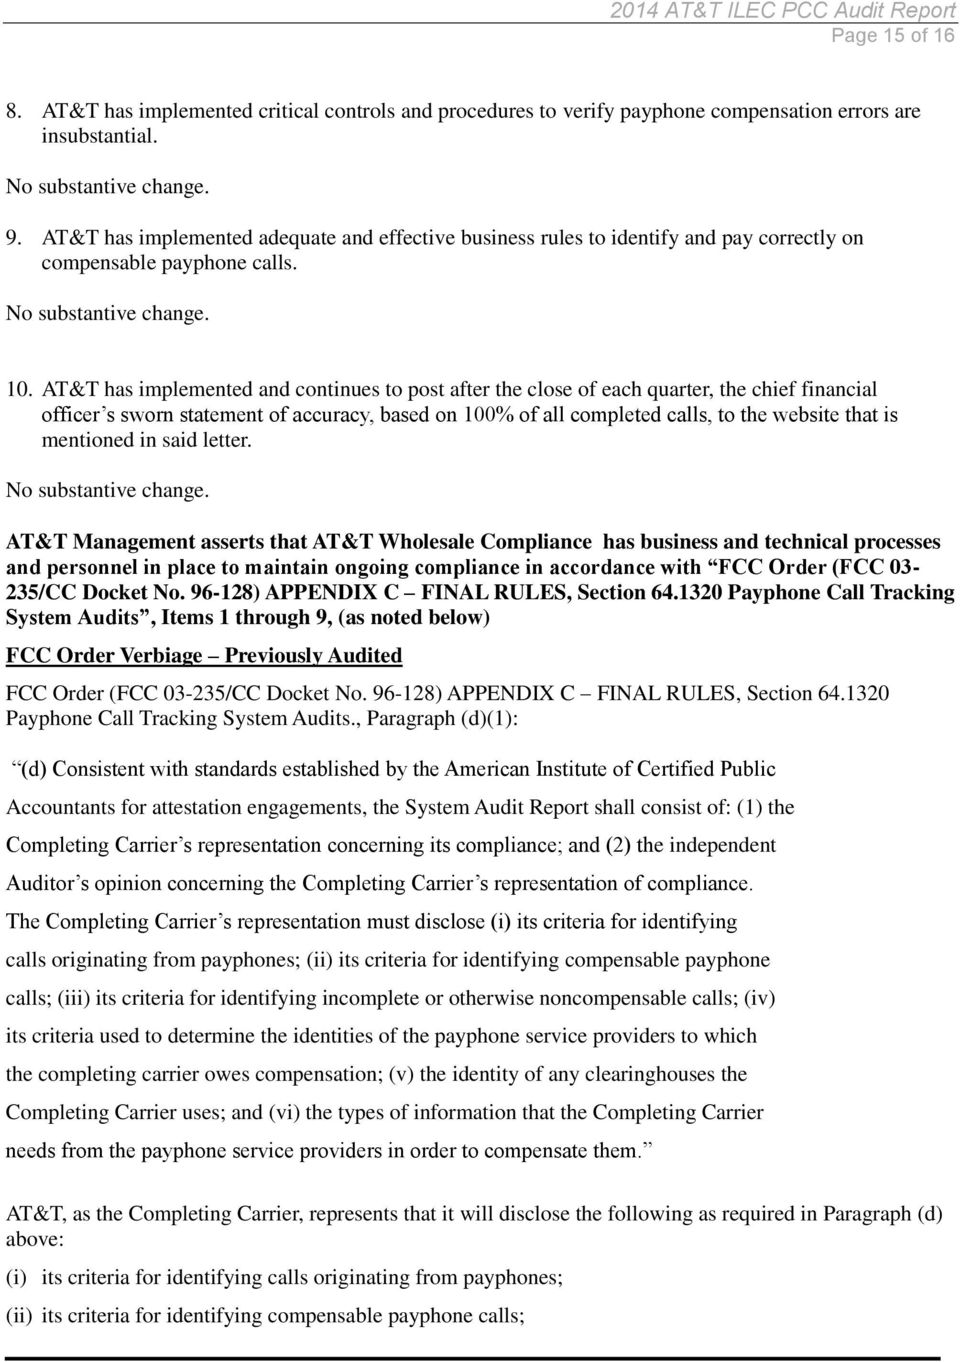 AT&T has implemented and continues to post after the close of each quarter, the chief financial officer s sworn statement of accuracy, based on 100% of all completed calls, to the website that is